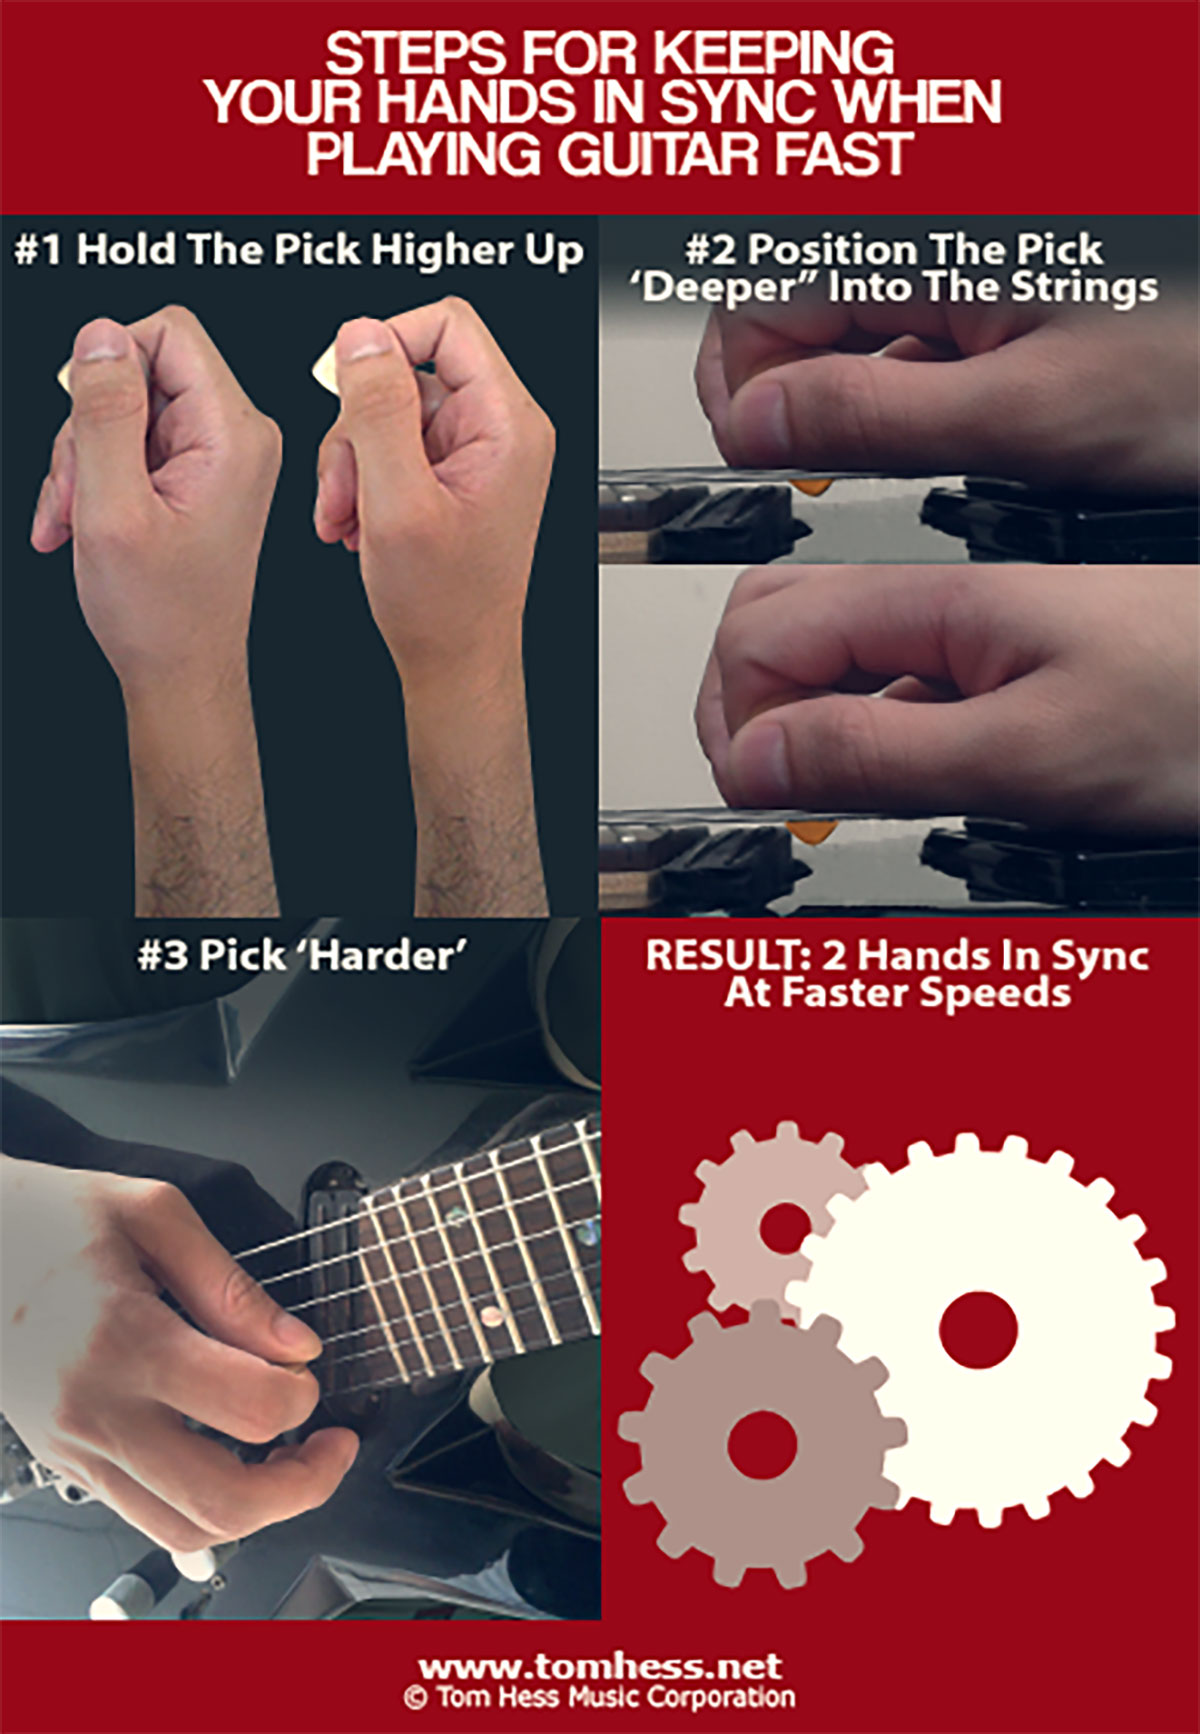 How To Keep Both Hands In Sync While Playing Guitar